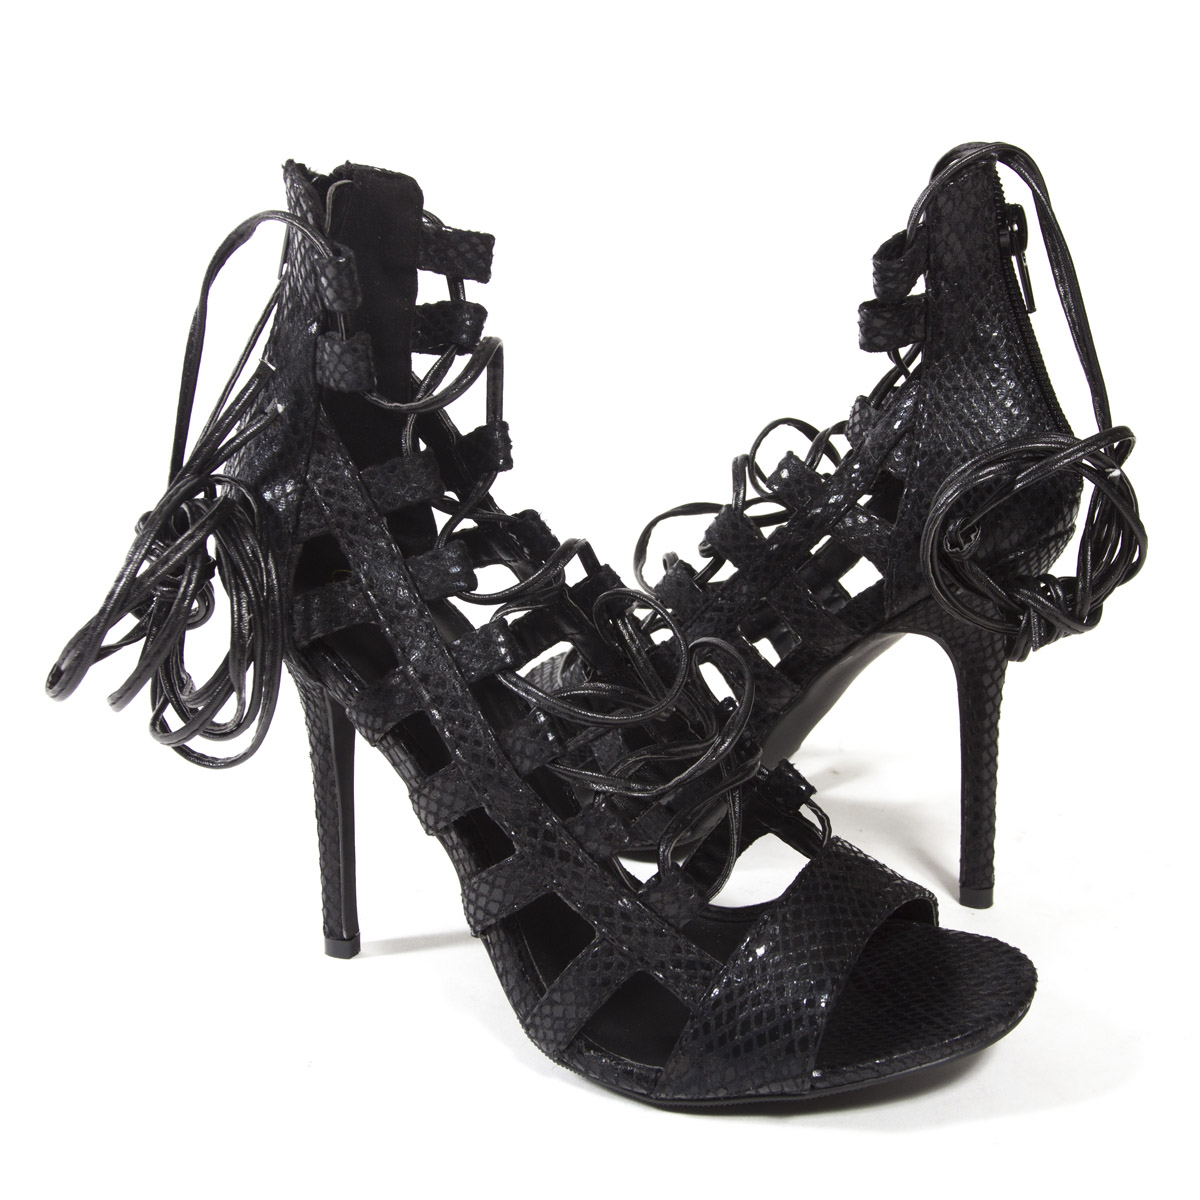 cd045798a9b5 Women Black Open Toe Lace Up Strappy Gladiator Stiletto High Heel ...